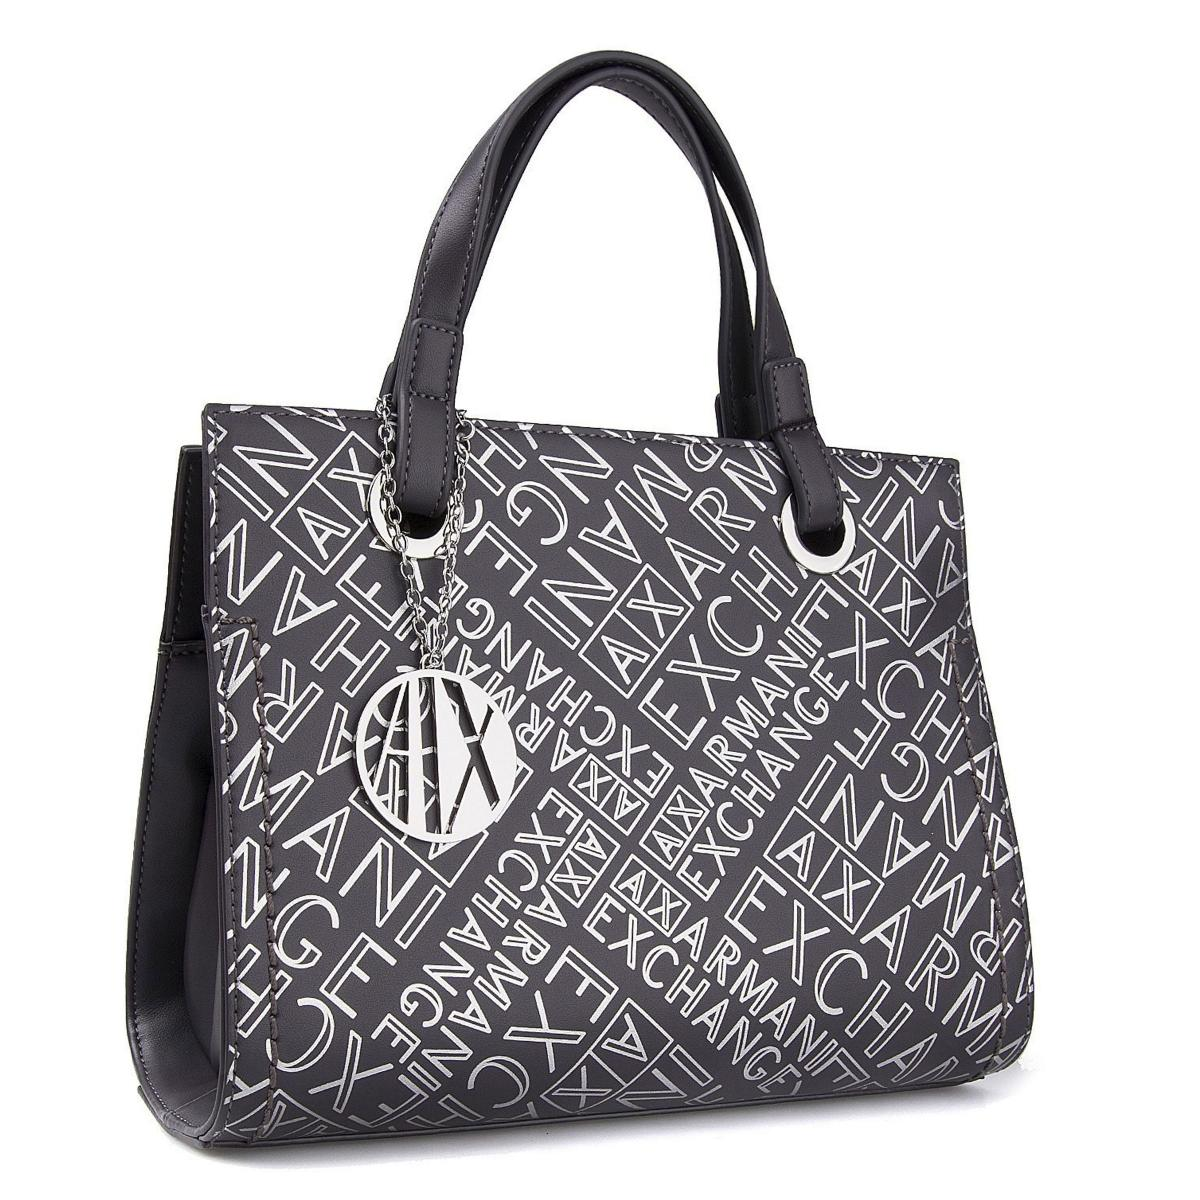 Borsa Armani Exchange Small shopping con stampe da donna rif. 942270 CC734